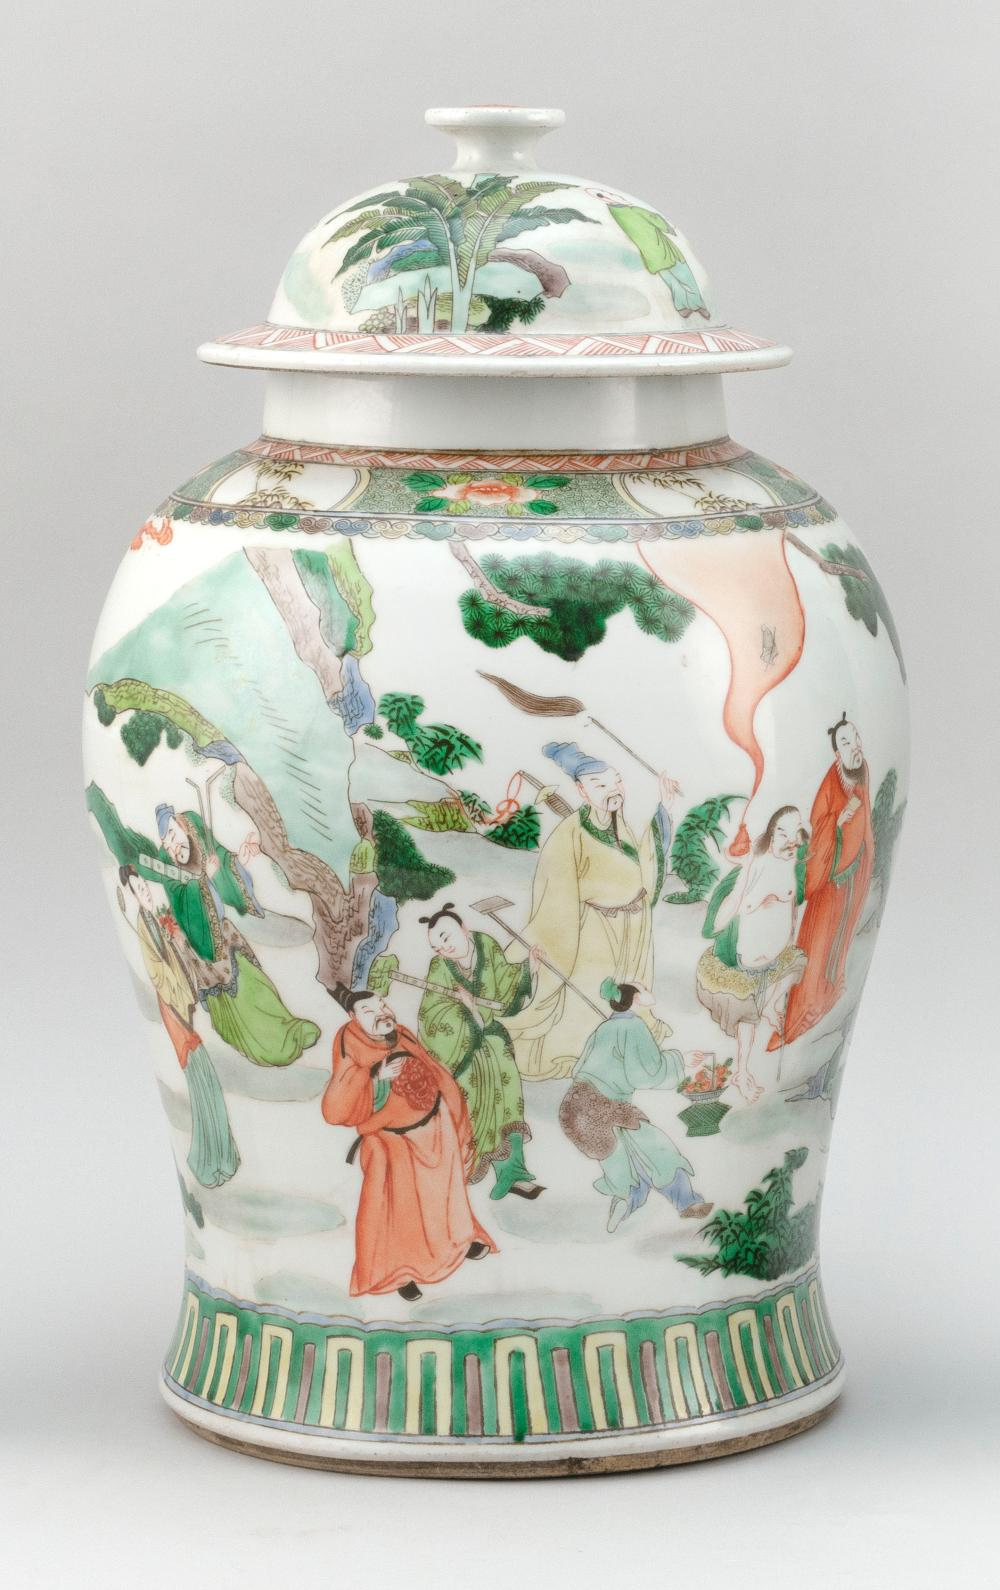 CHINESE FAMILLE VERTE PORCELAIN TEMPLE JAR In inverted pear shape, with domed cover and figural landscape decoration. Six-character...